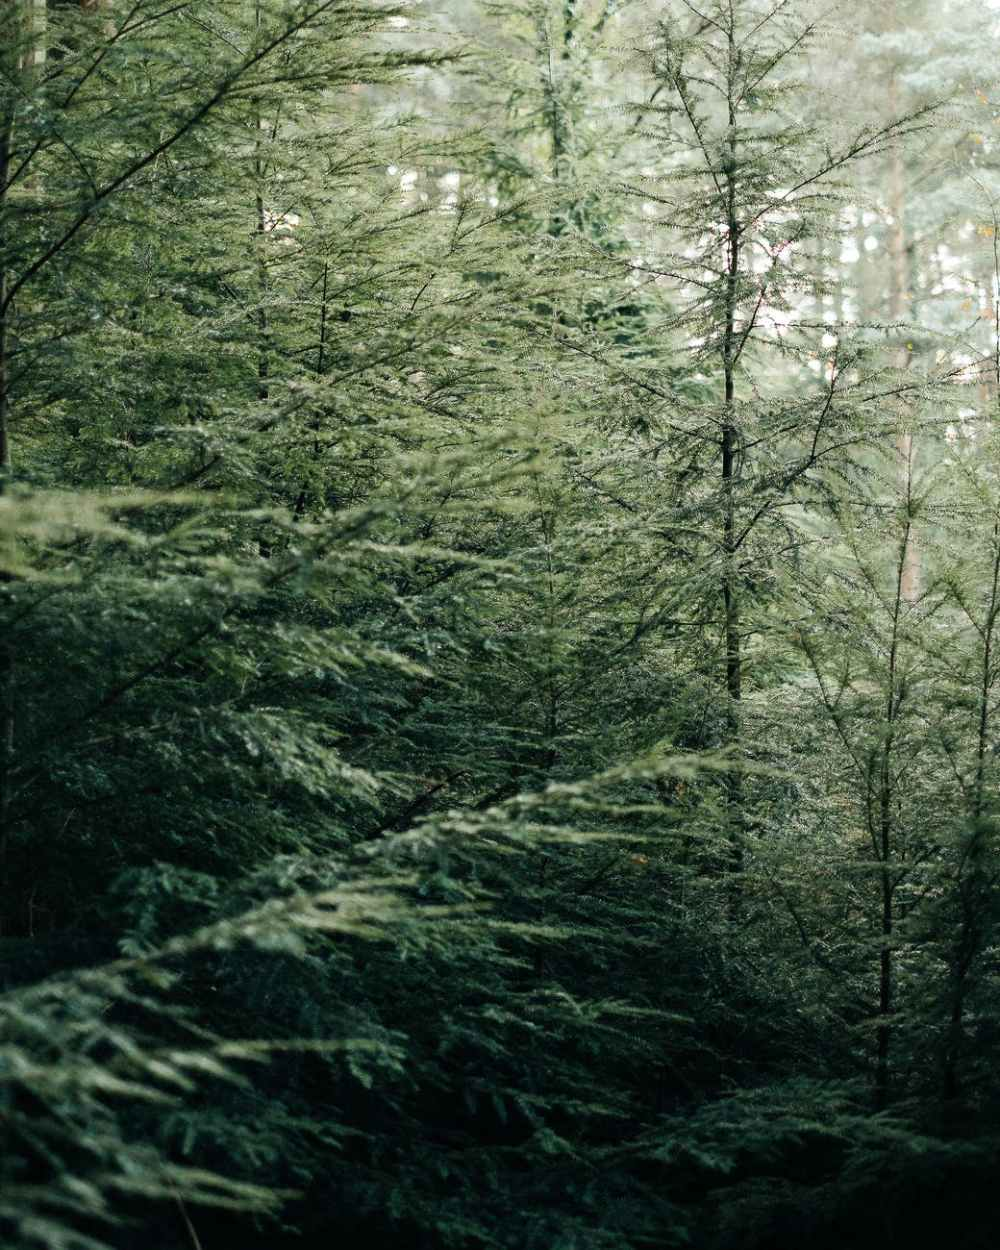 green spruce forest in daytime